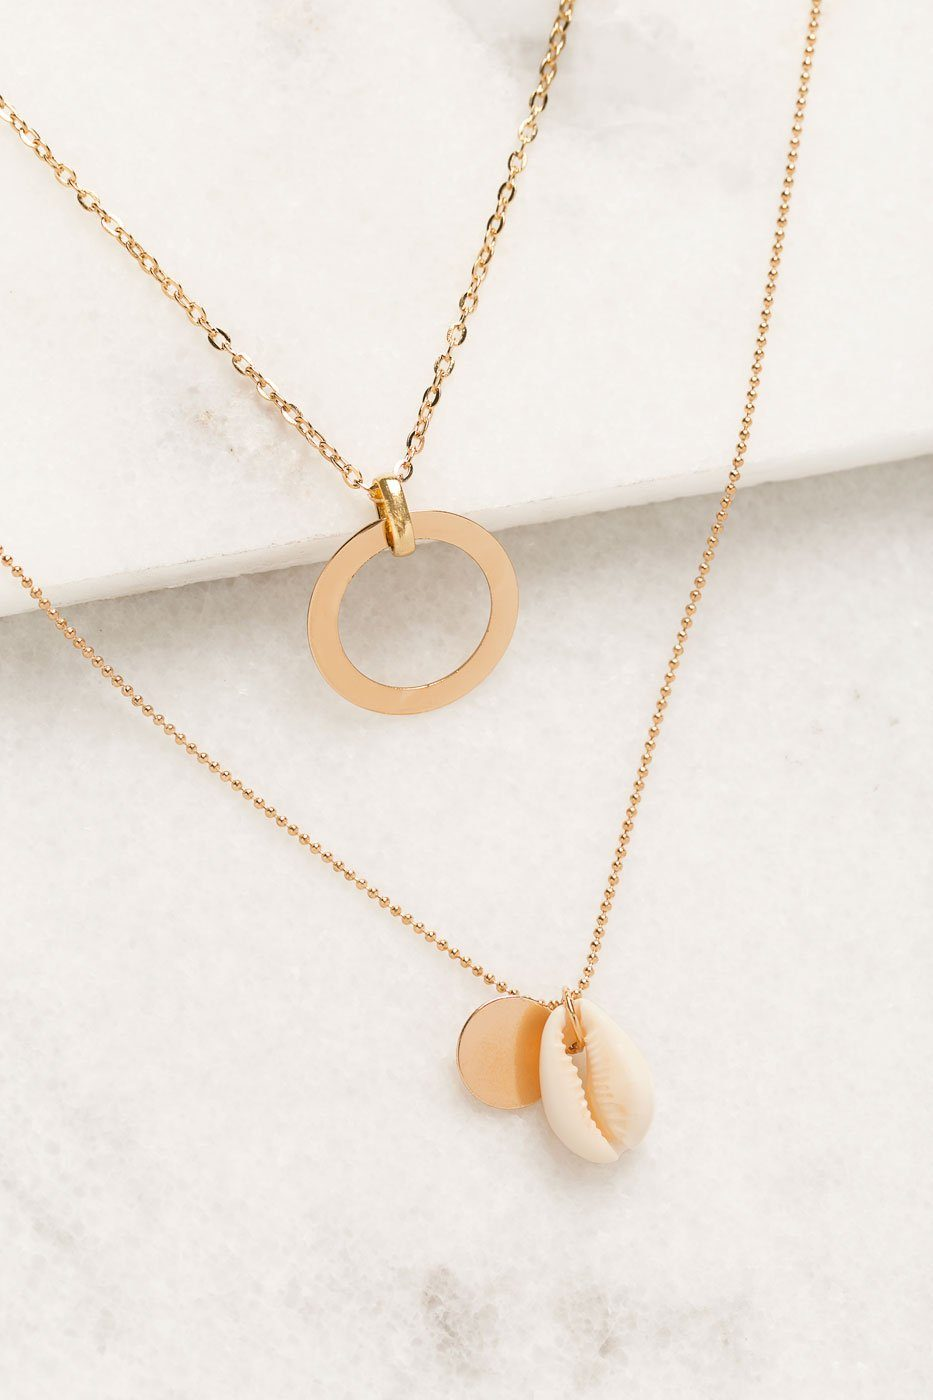 Priceless | Dream | Layered Necklace | Jewelry | Womens